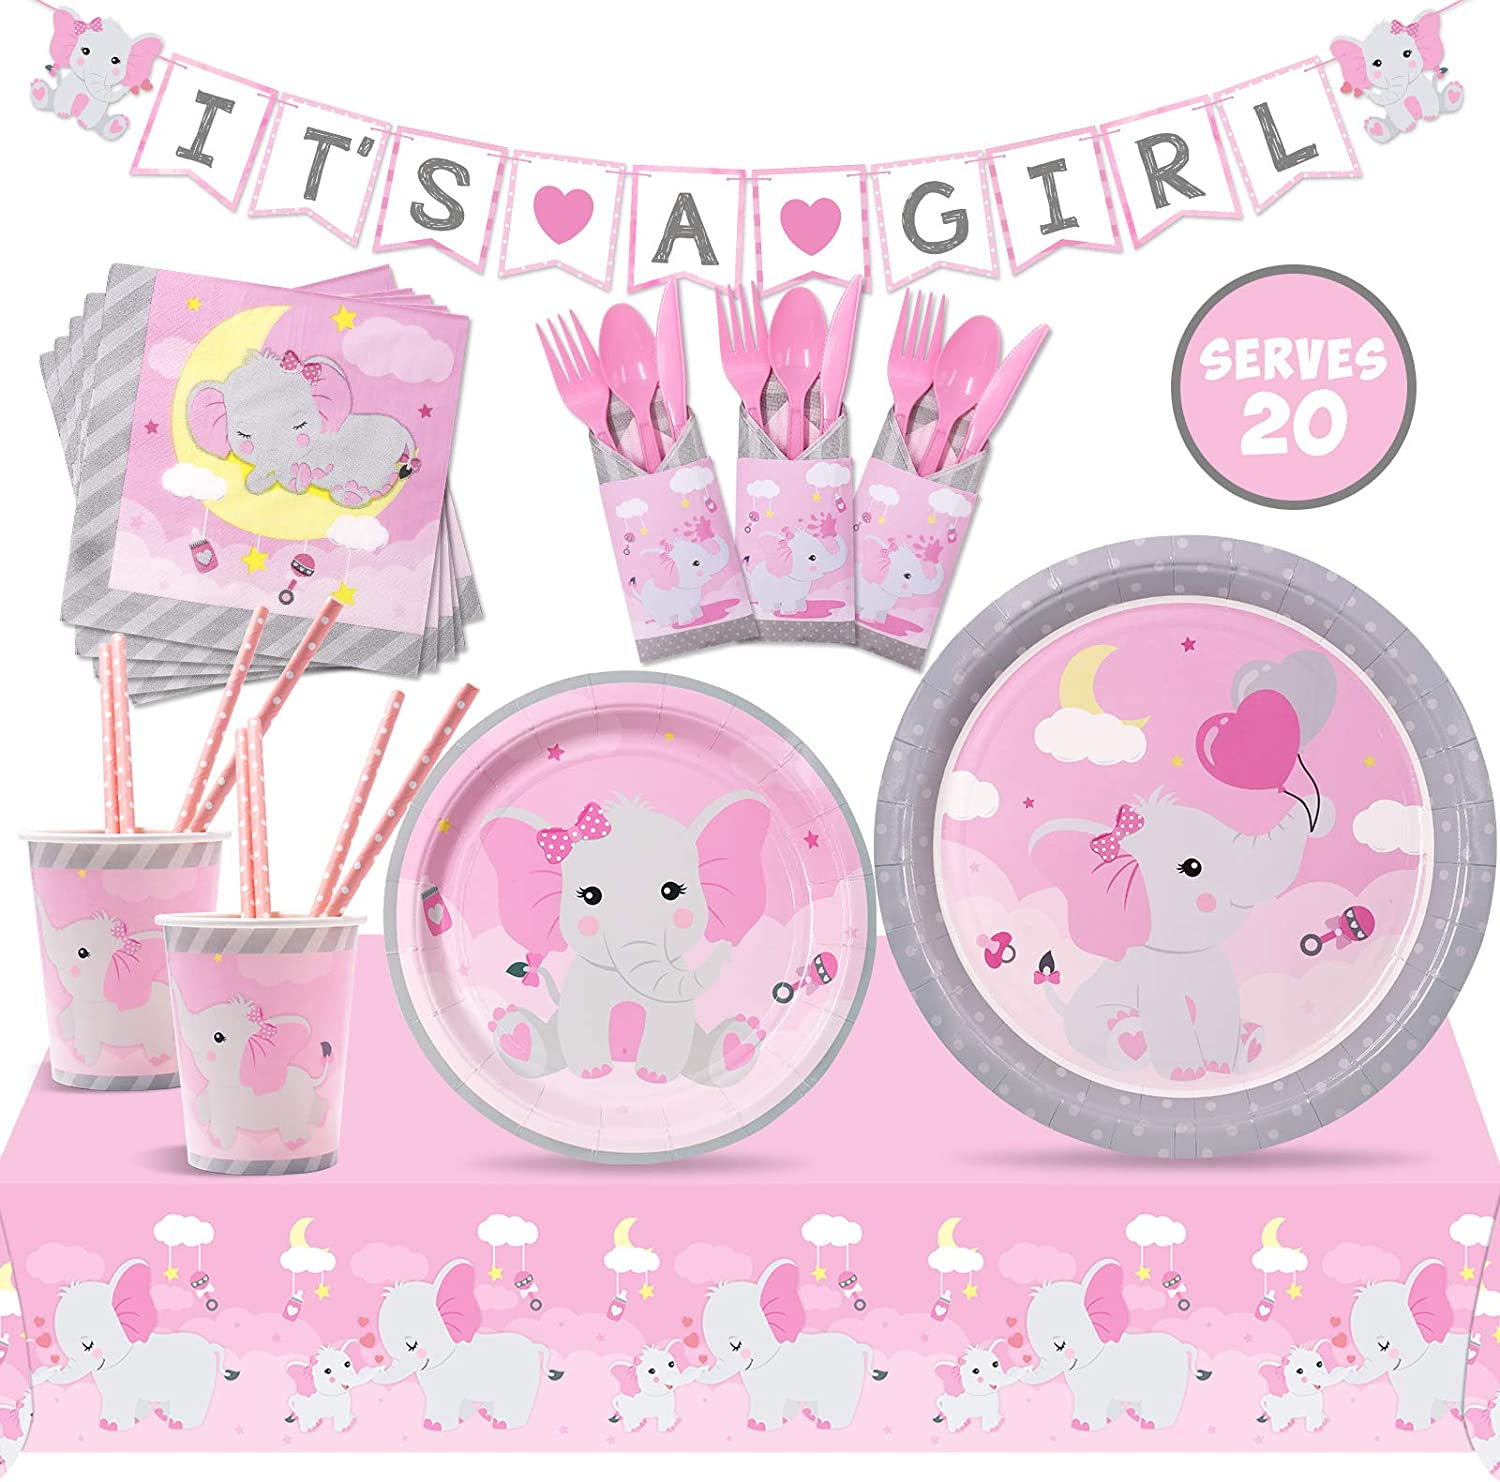 Pink Elephant IT'S A Girl Party Tableware Supplies Pink and Gray Baby Shower Dinnerware Including Banner, Plates, Cups, Cutlery Set Serves 20 Guests for Pink Little Peanut Kids Birthday Decor